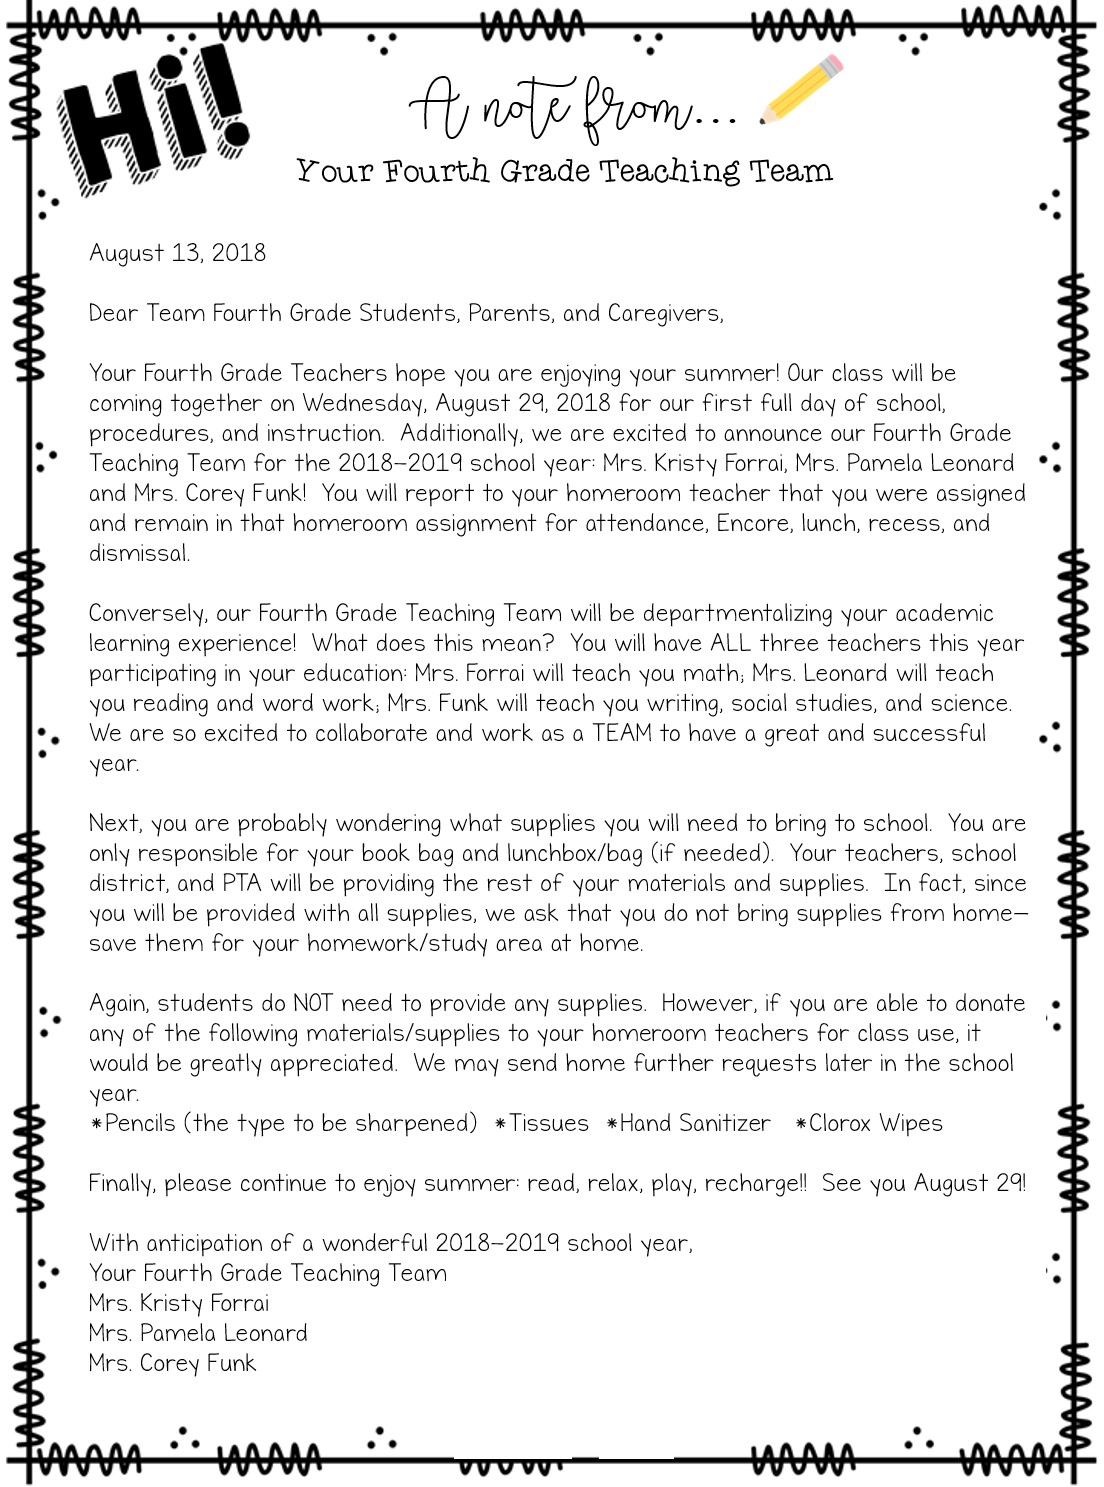 welcome letter kind kid name corey funk position 4th grade teacher